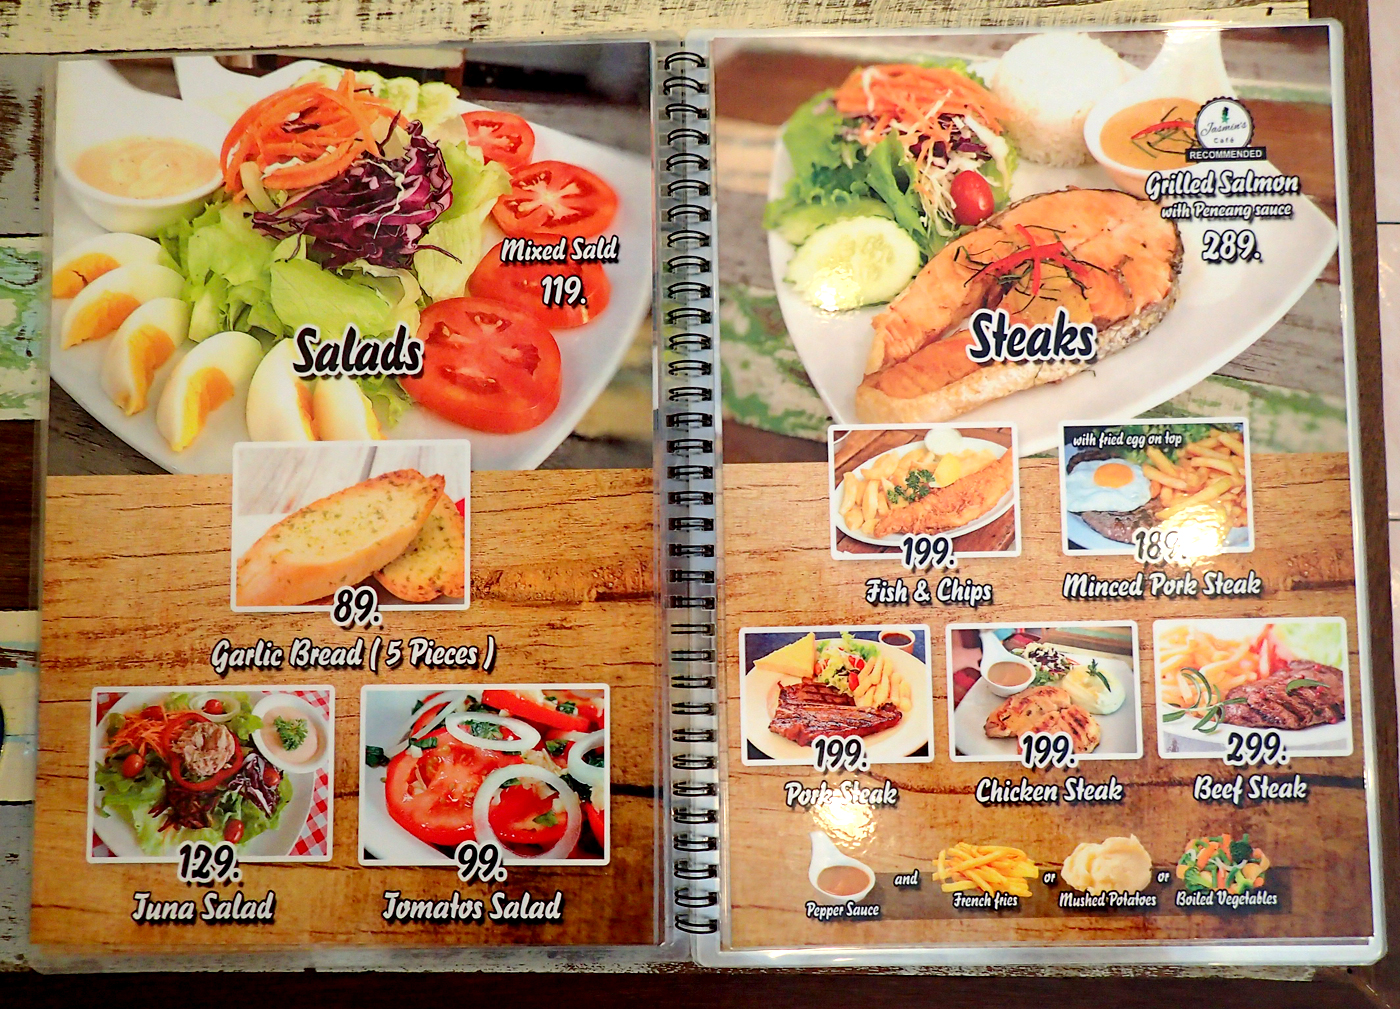 jasmins-cafe-menu-book